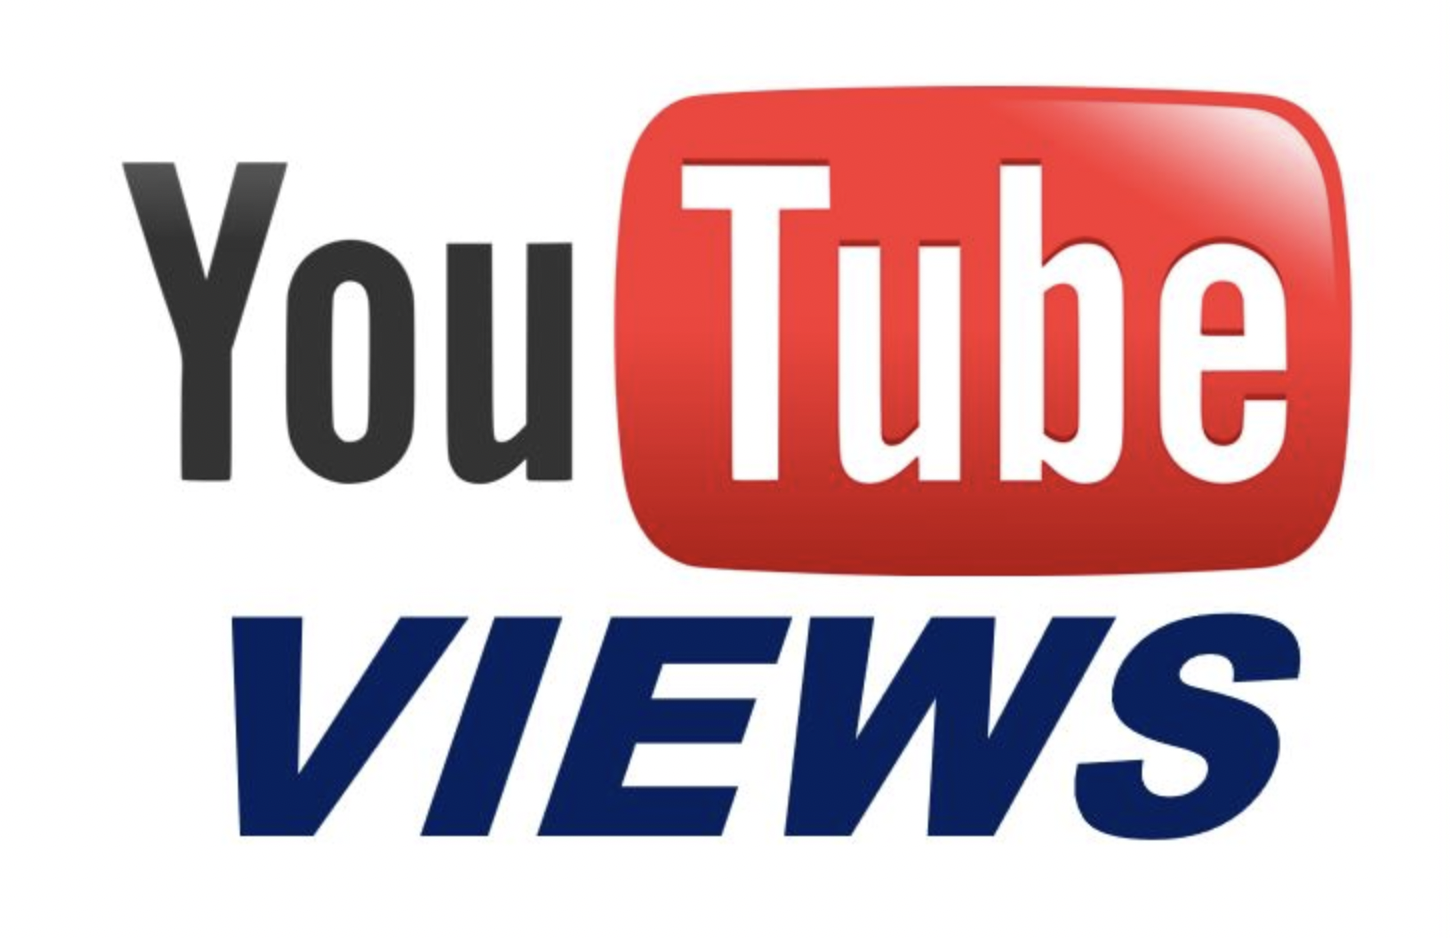 Why are youtube views important?